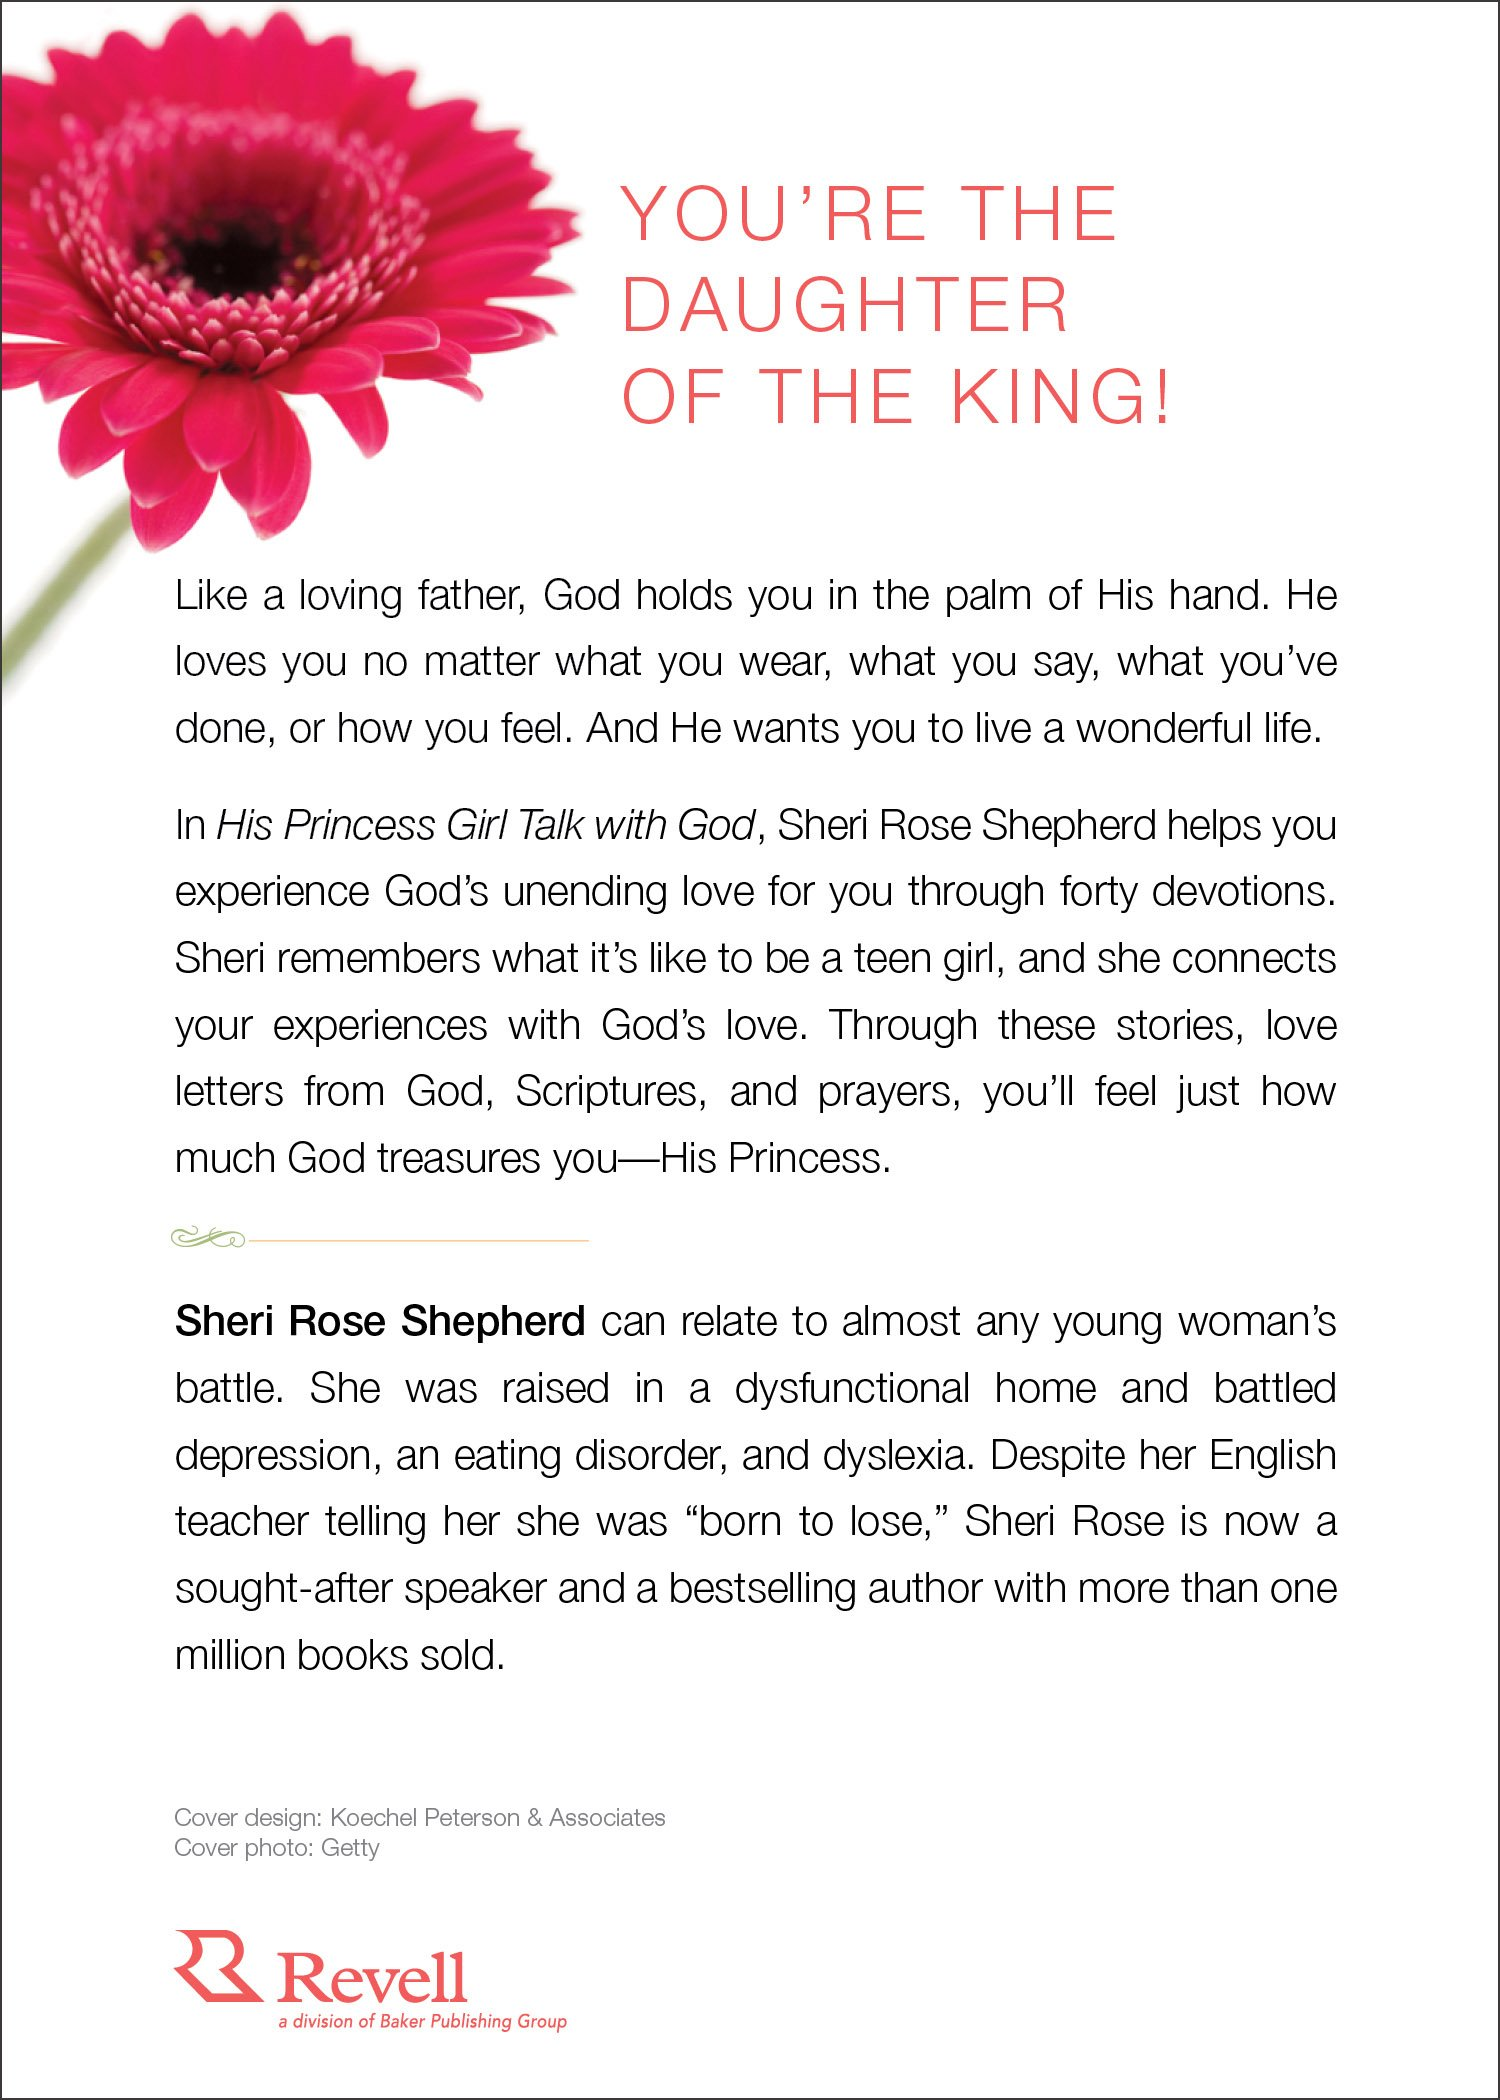 His Princess Girl Talk with God: Love Letters and Devotions for